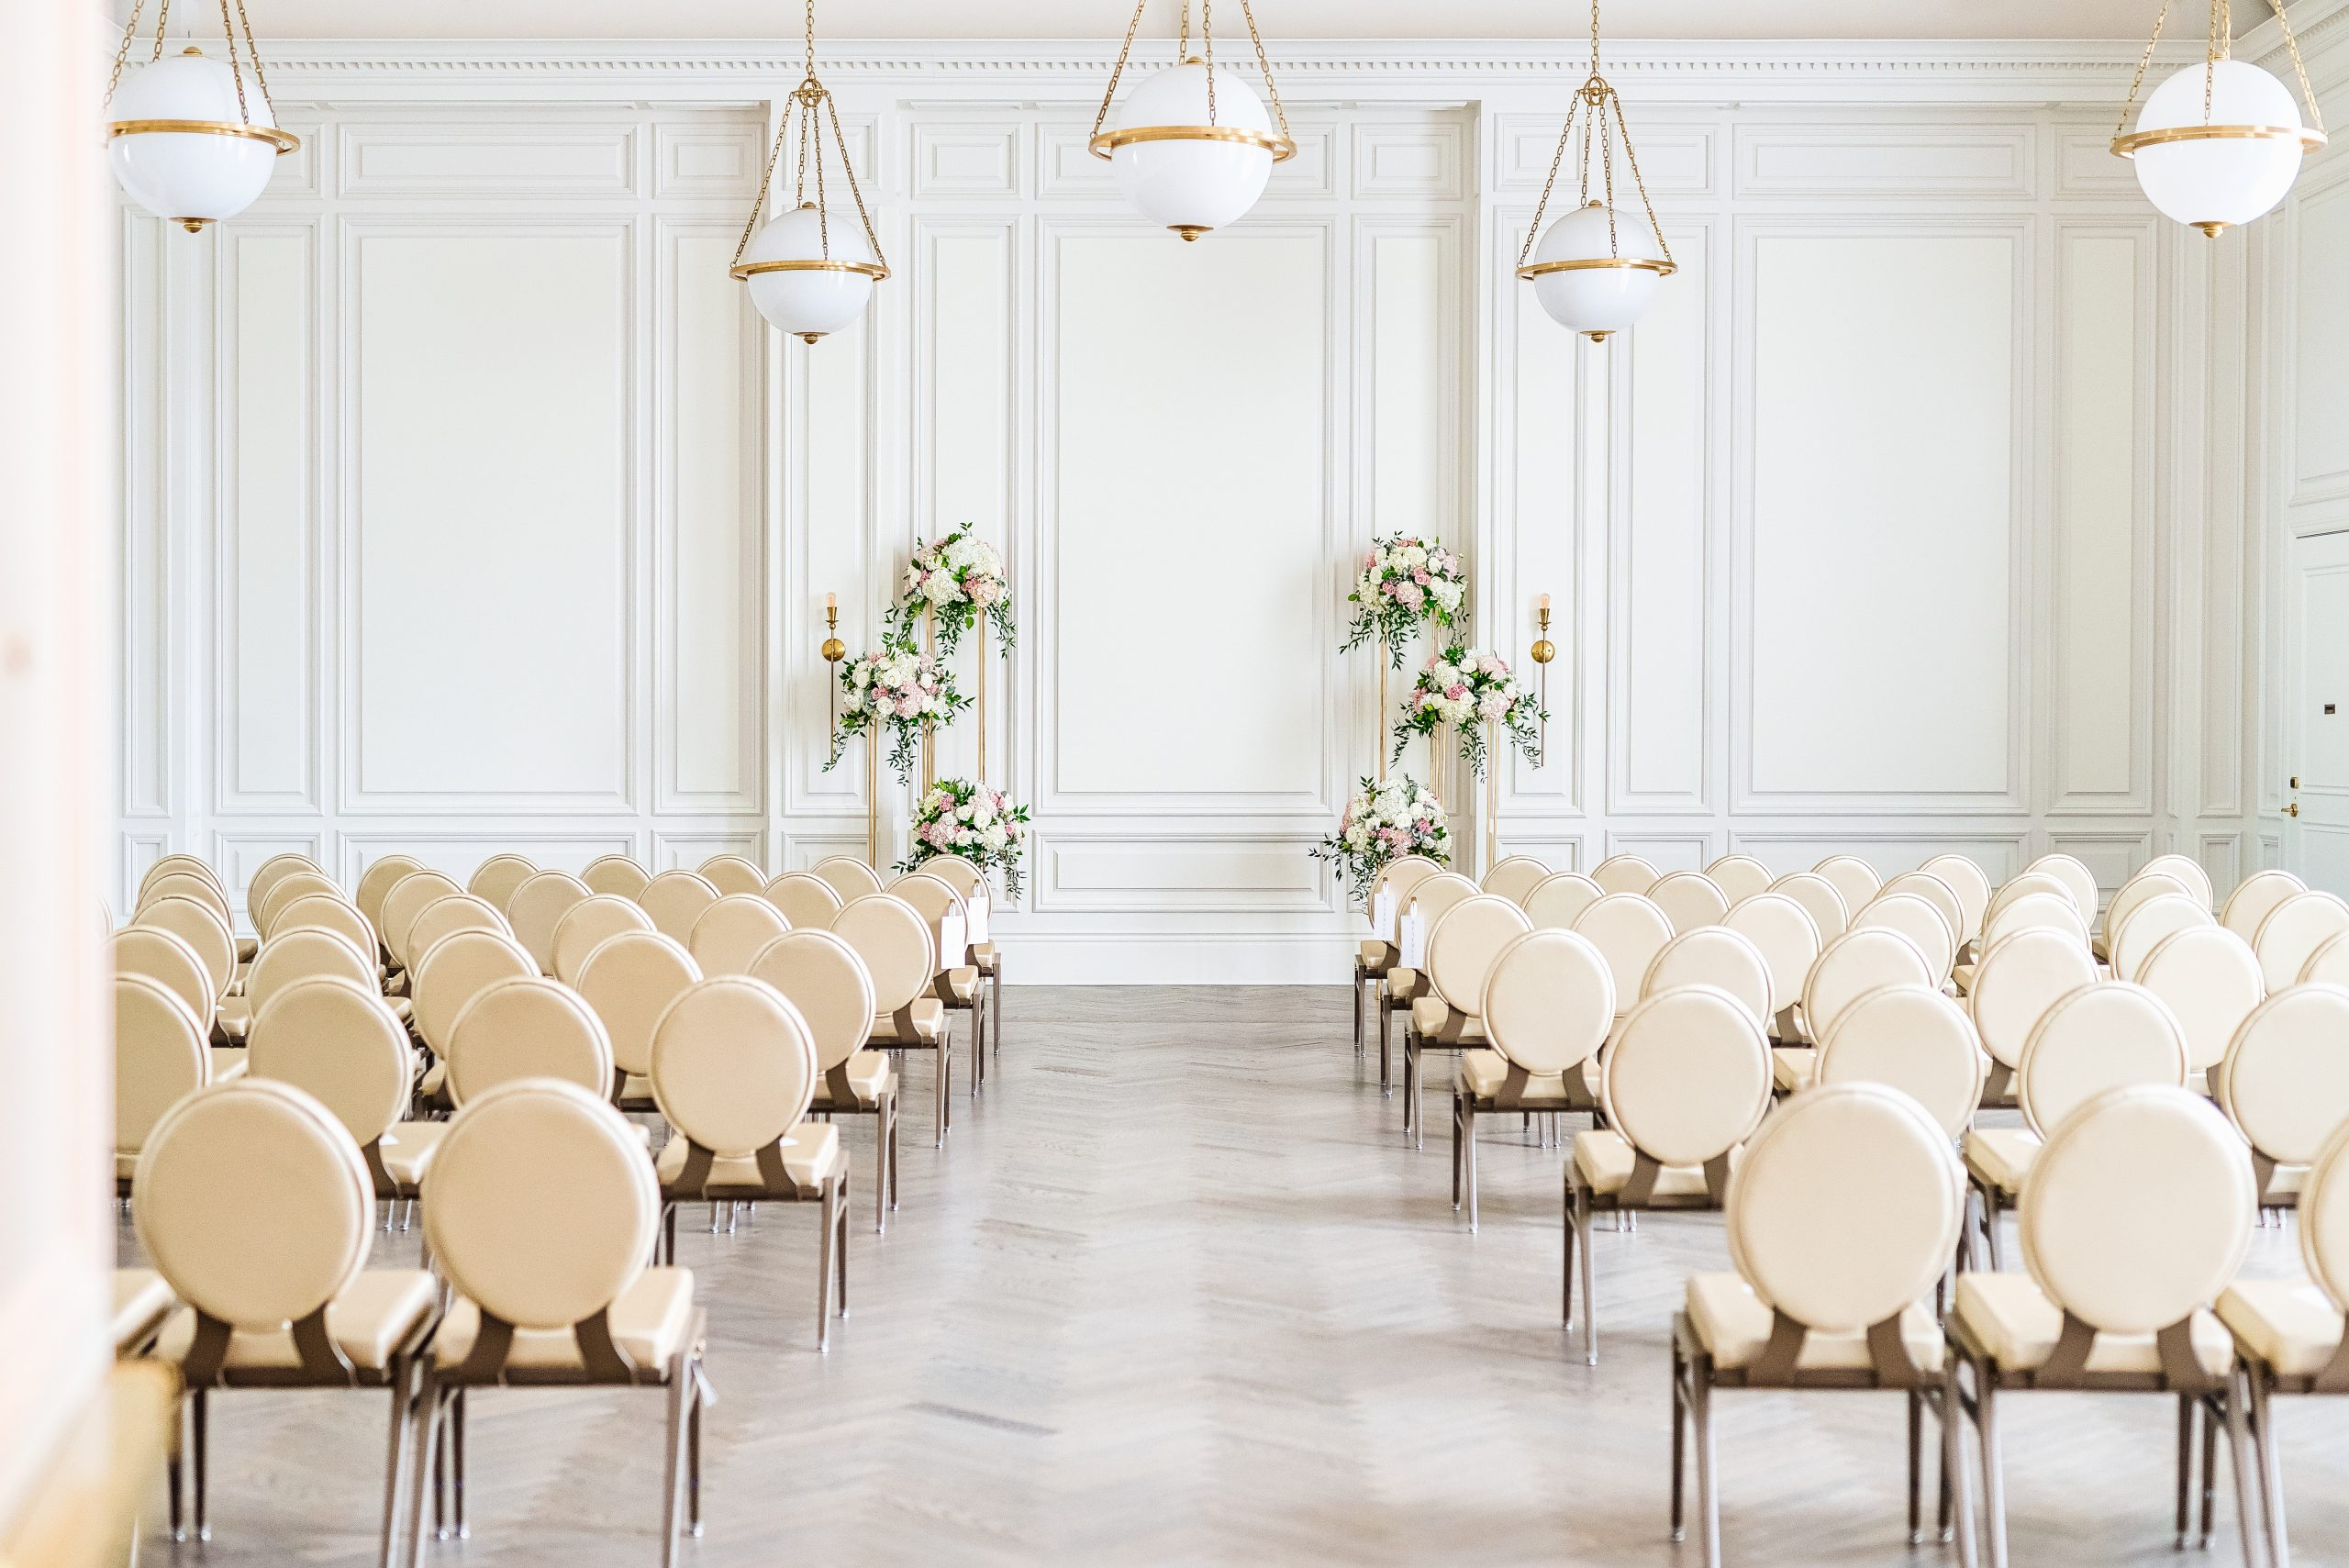 4 Reasons to Host Your Wedding at The Adolphus Hotel Wedding venue